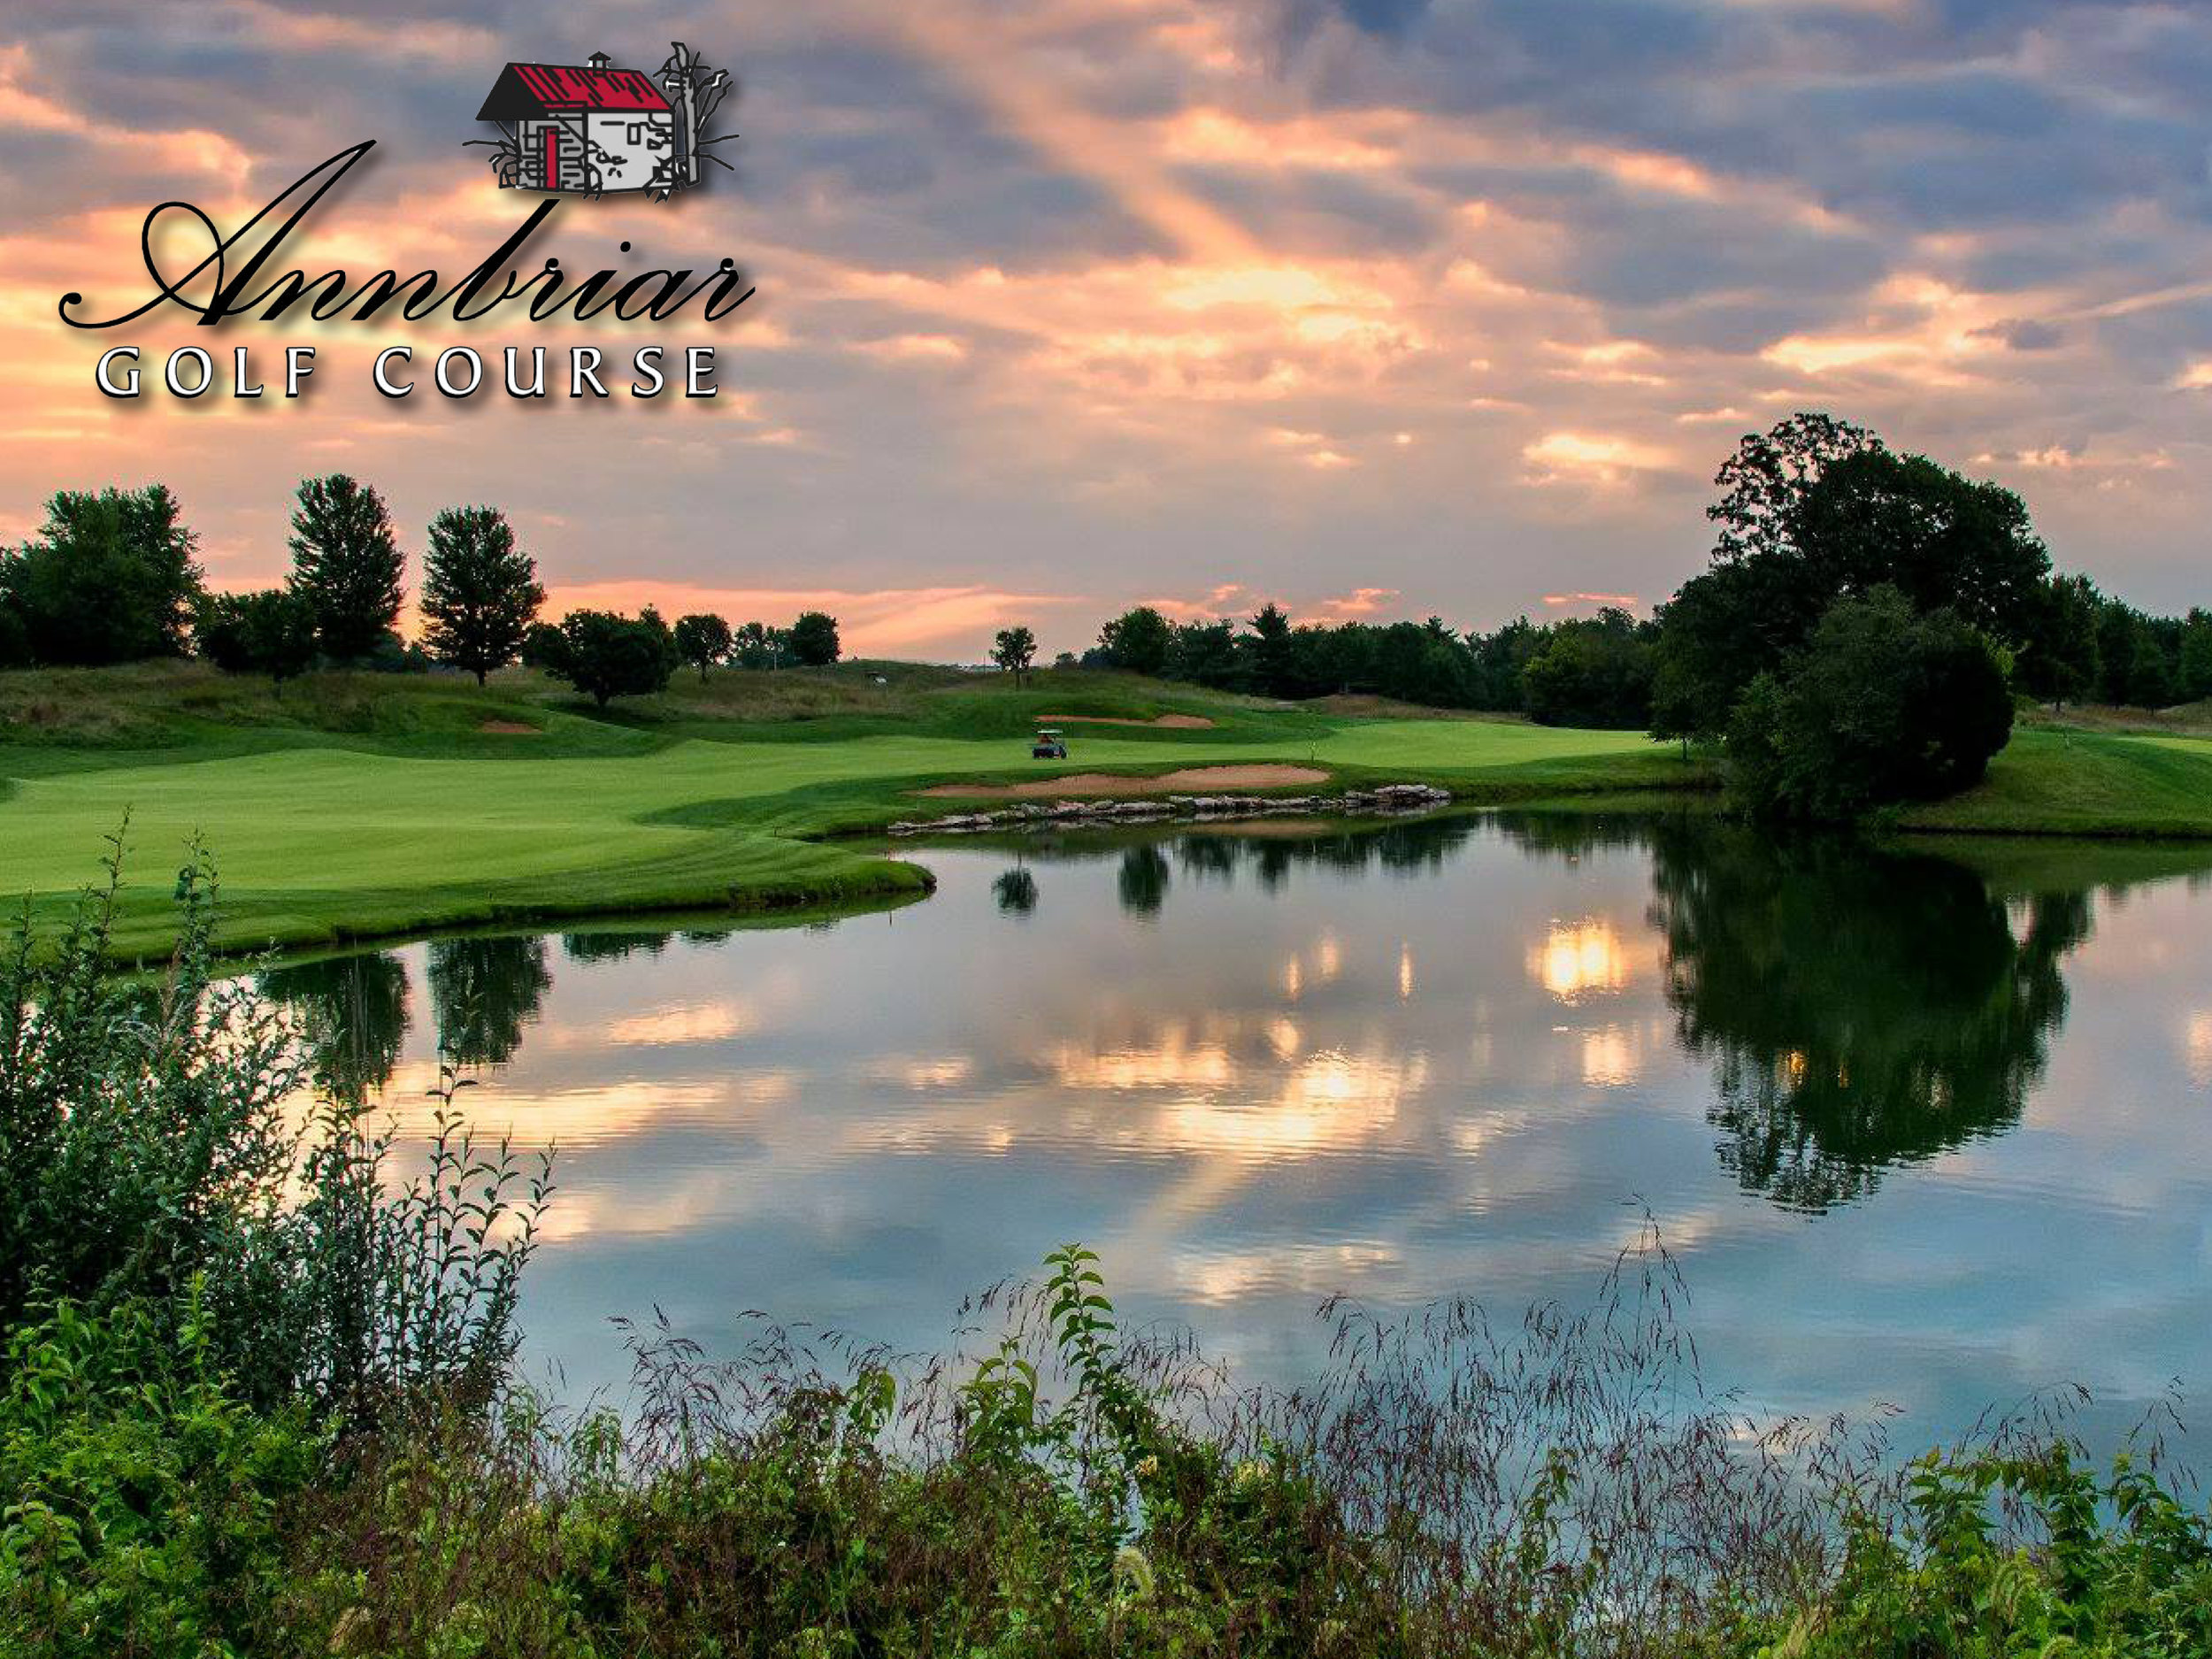 Waterloo, IL - ANNBRIAR GOLF COURSESUNDAY, June 9th$95